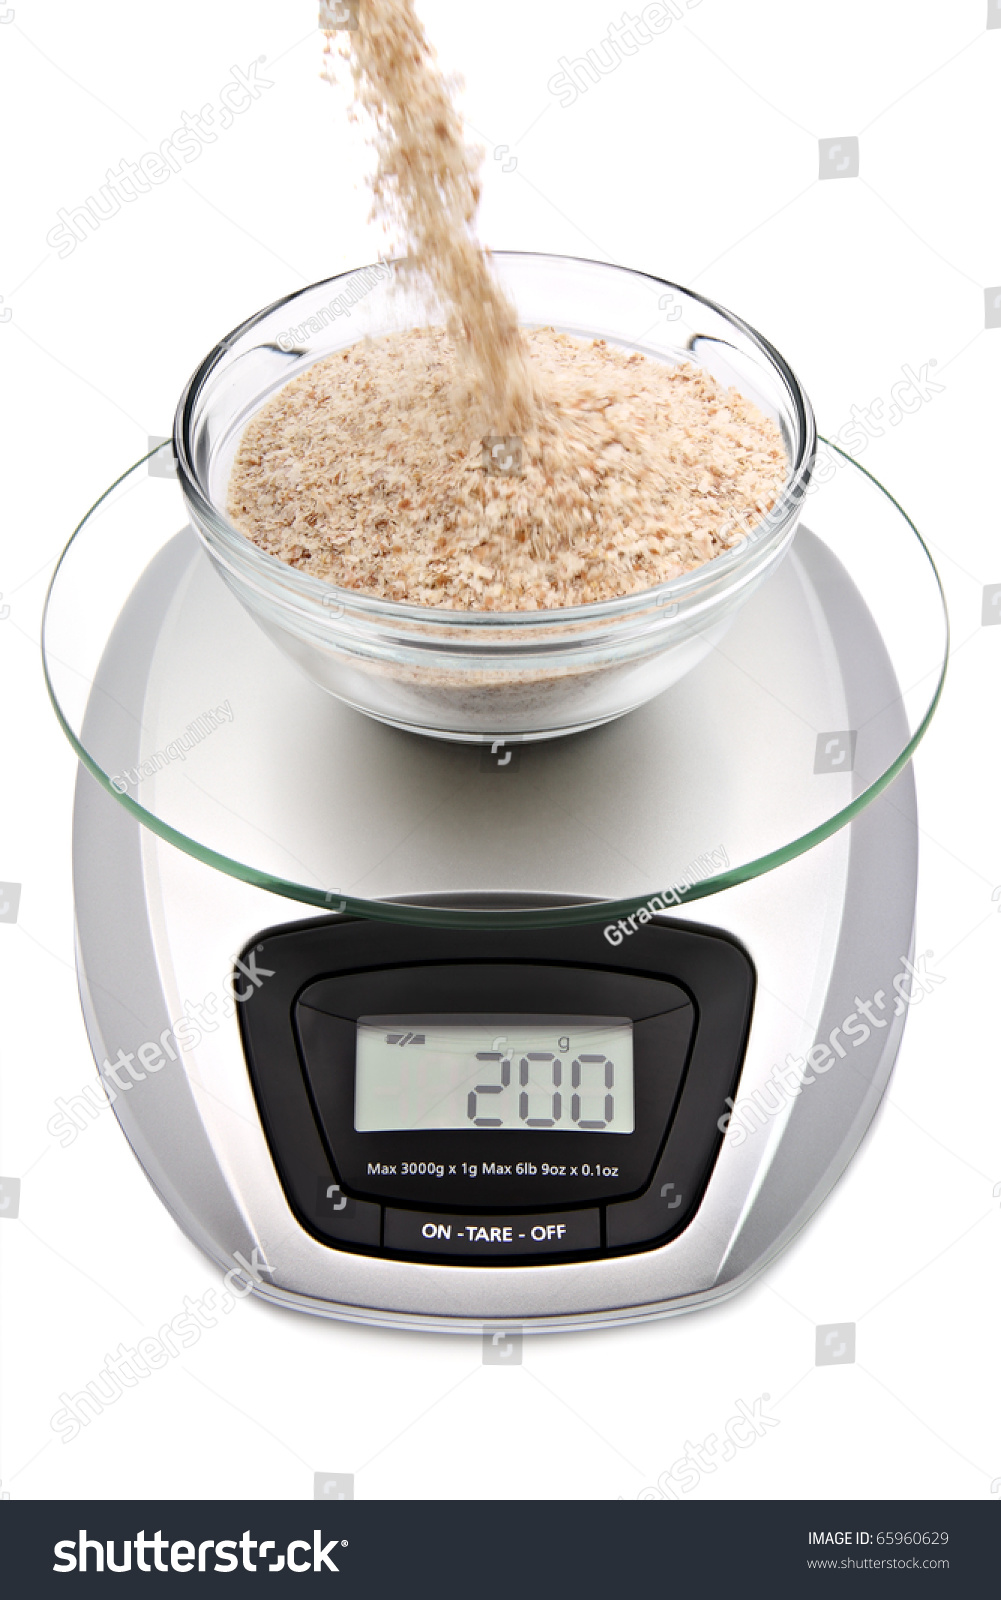 Digital Kitchen Scale With Bowl Of Oat Bran